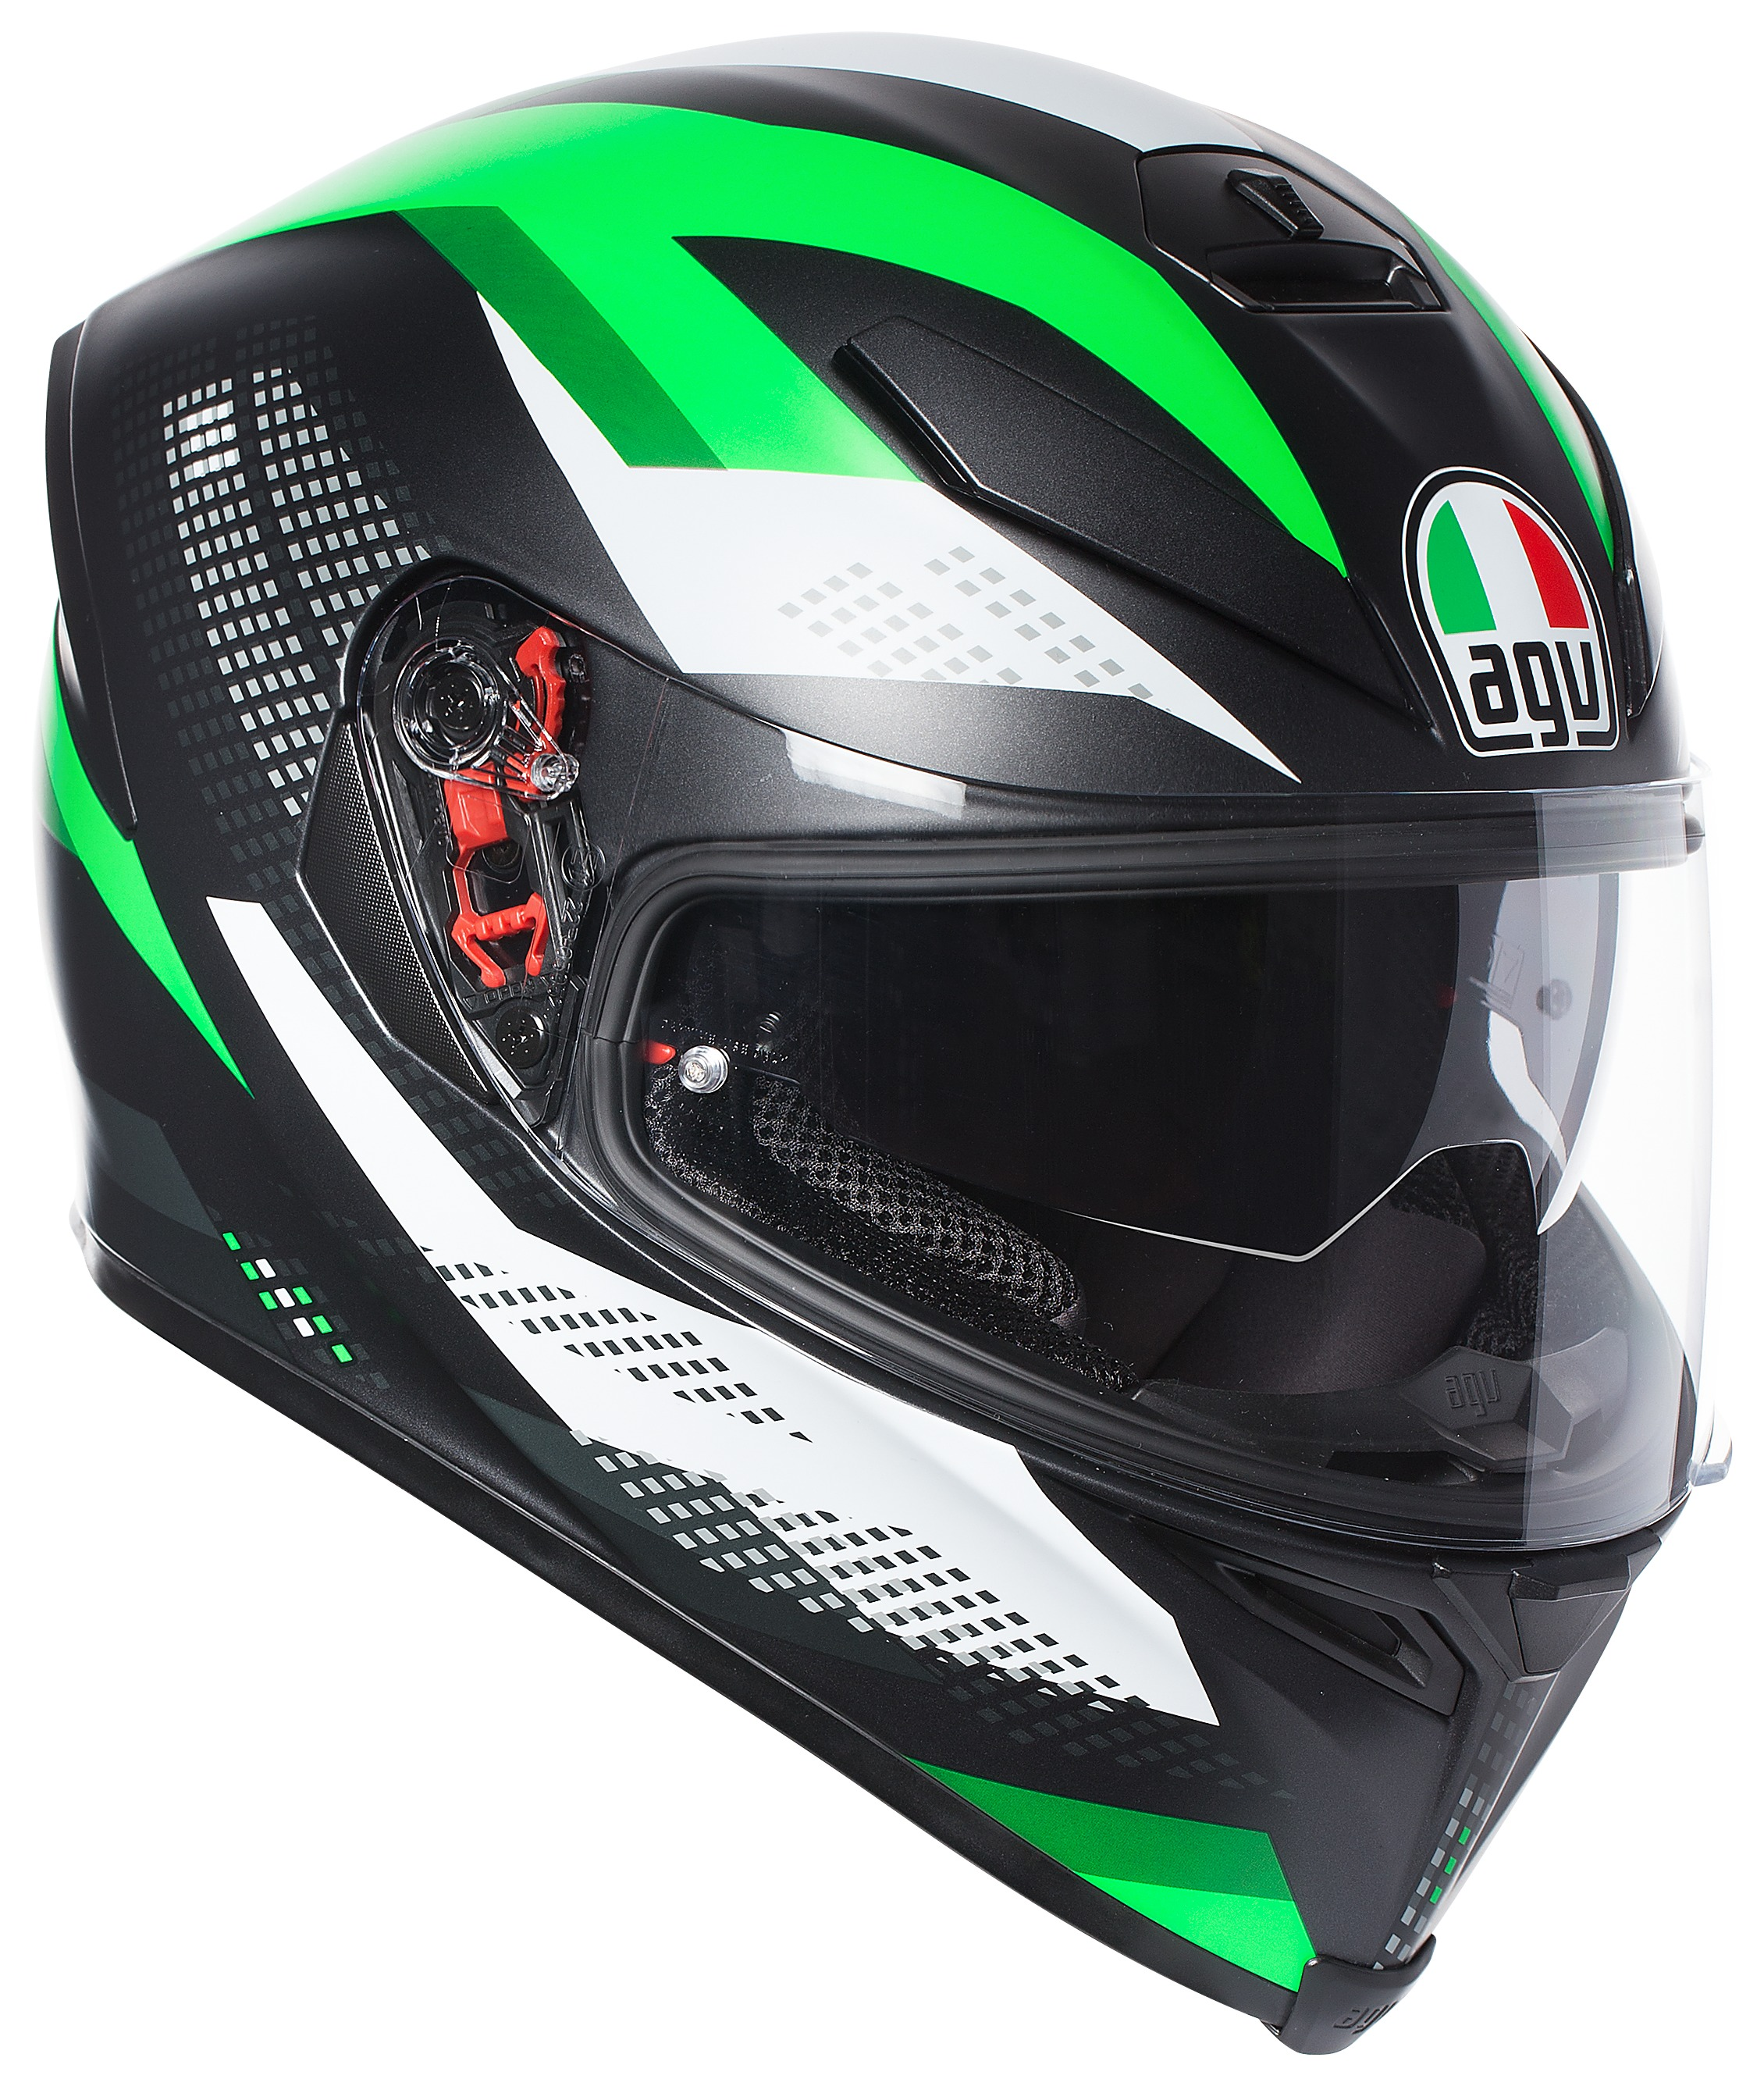 Agv Helmets Motorcycle Face Shields From Cycle Gear K3sv Simoncelli K5 S Marble Helmet